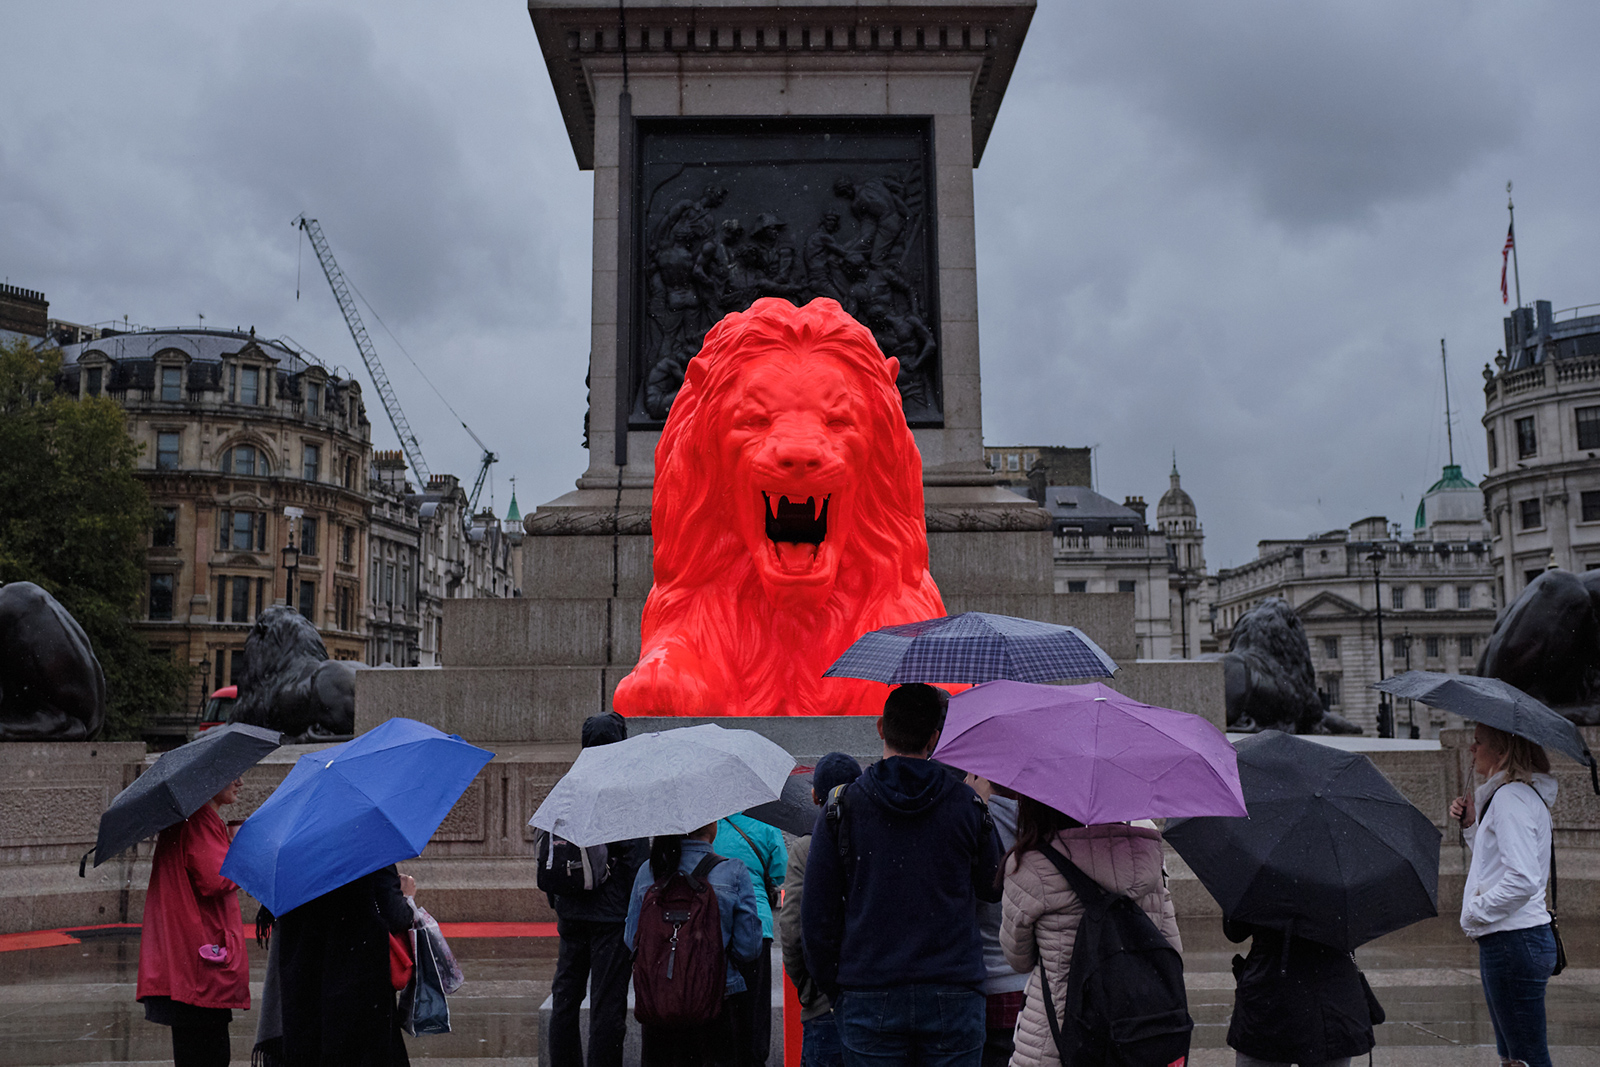 King Of The Proud  A rare glimpse of the Great British, fluorescent orange lion on an otherwise casually wet day.